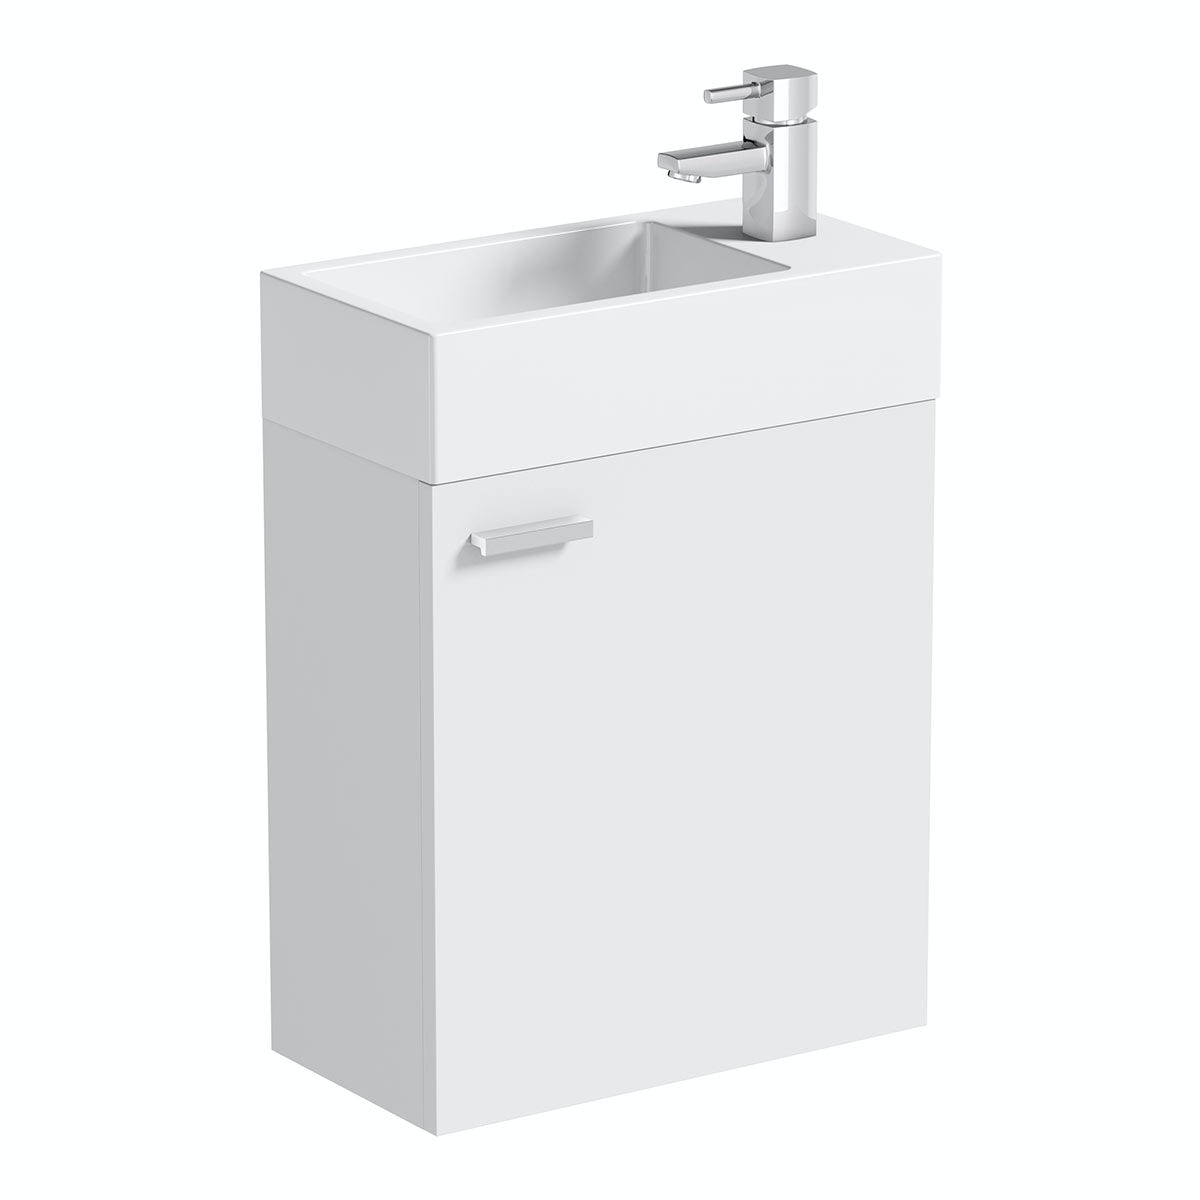 Compact White Wall Hung Unit with Resin Basin